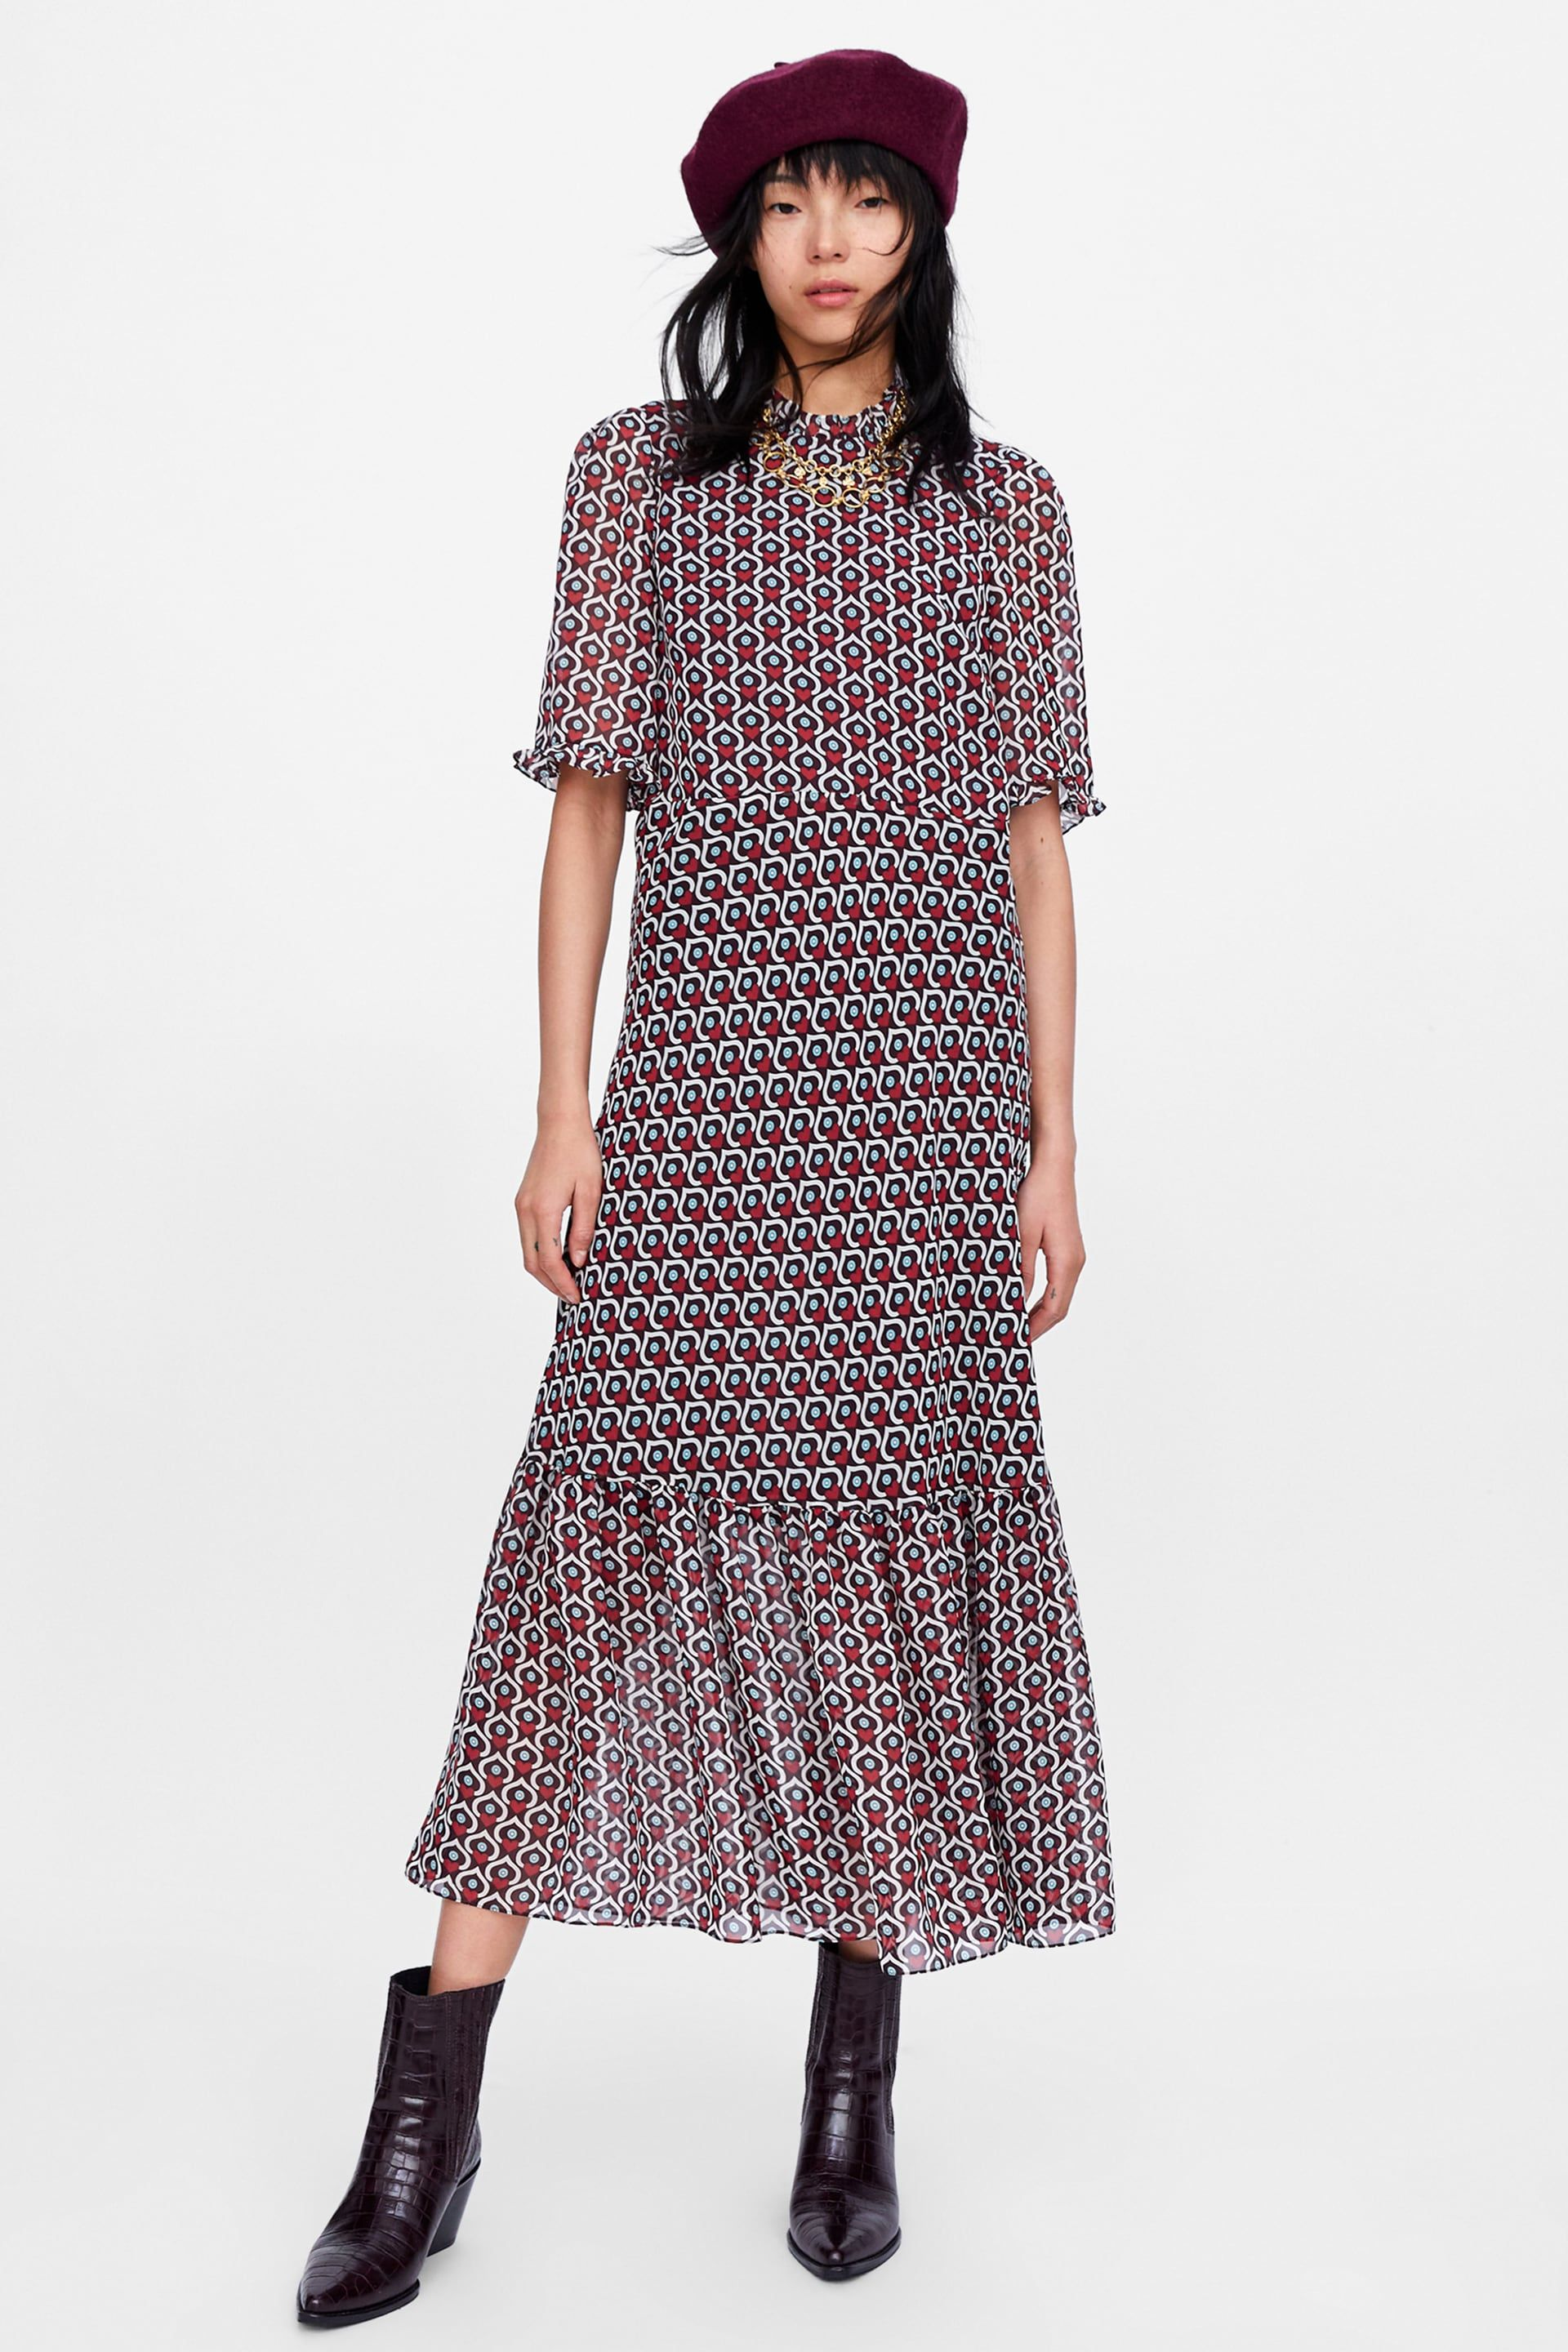 0eef78bb Image 1 of HEART PRINT MIDI DRESS from Zara HEART PRINT MIDI DRESS Heart  Print,